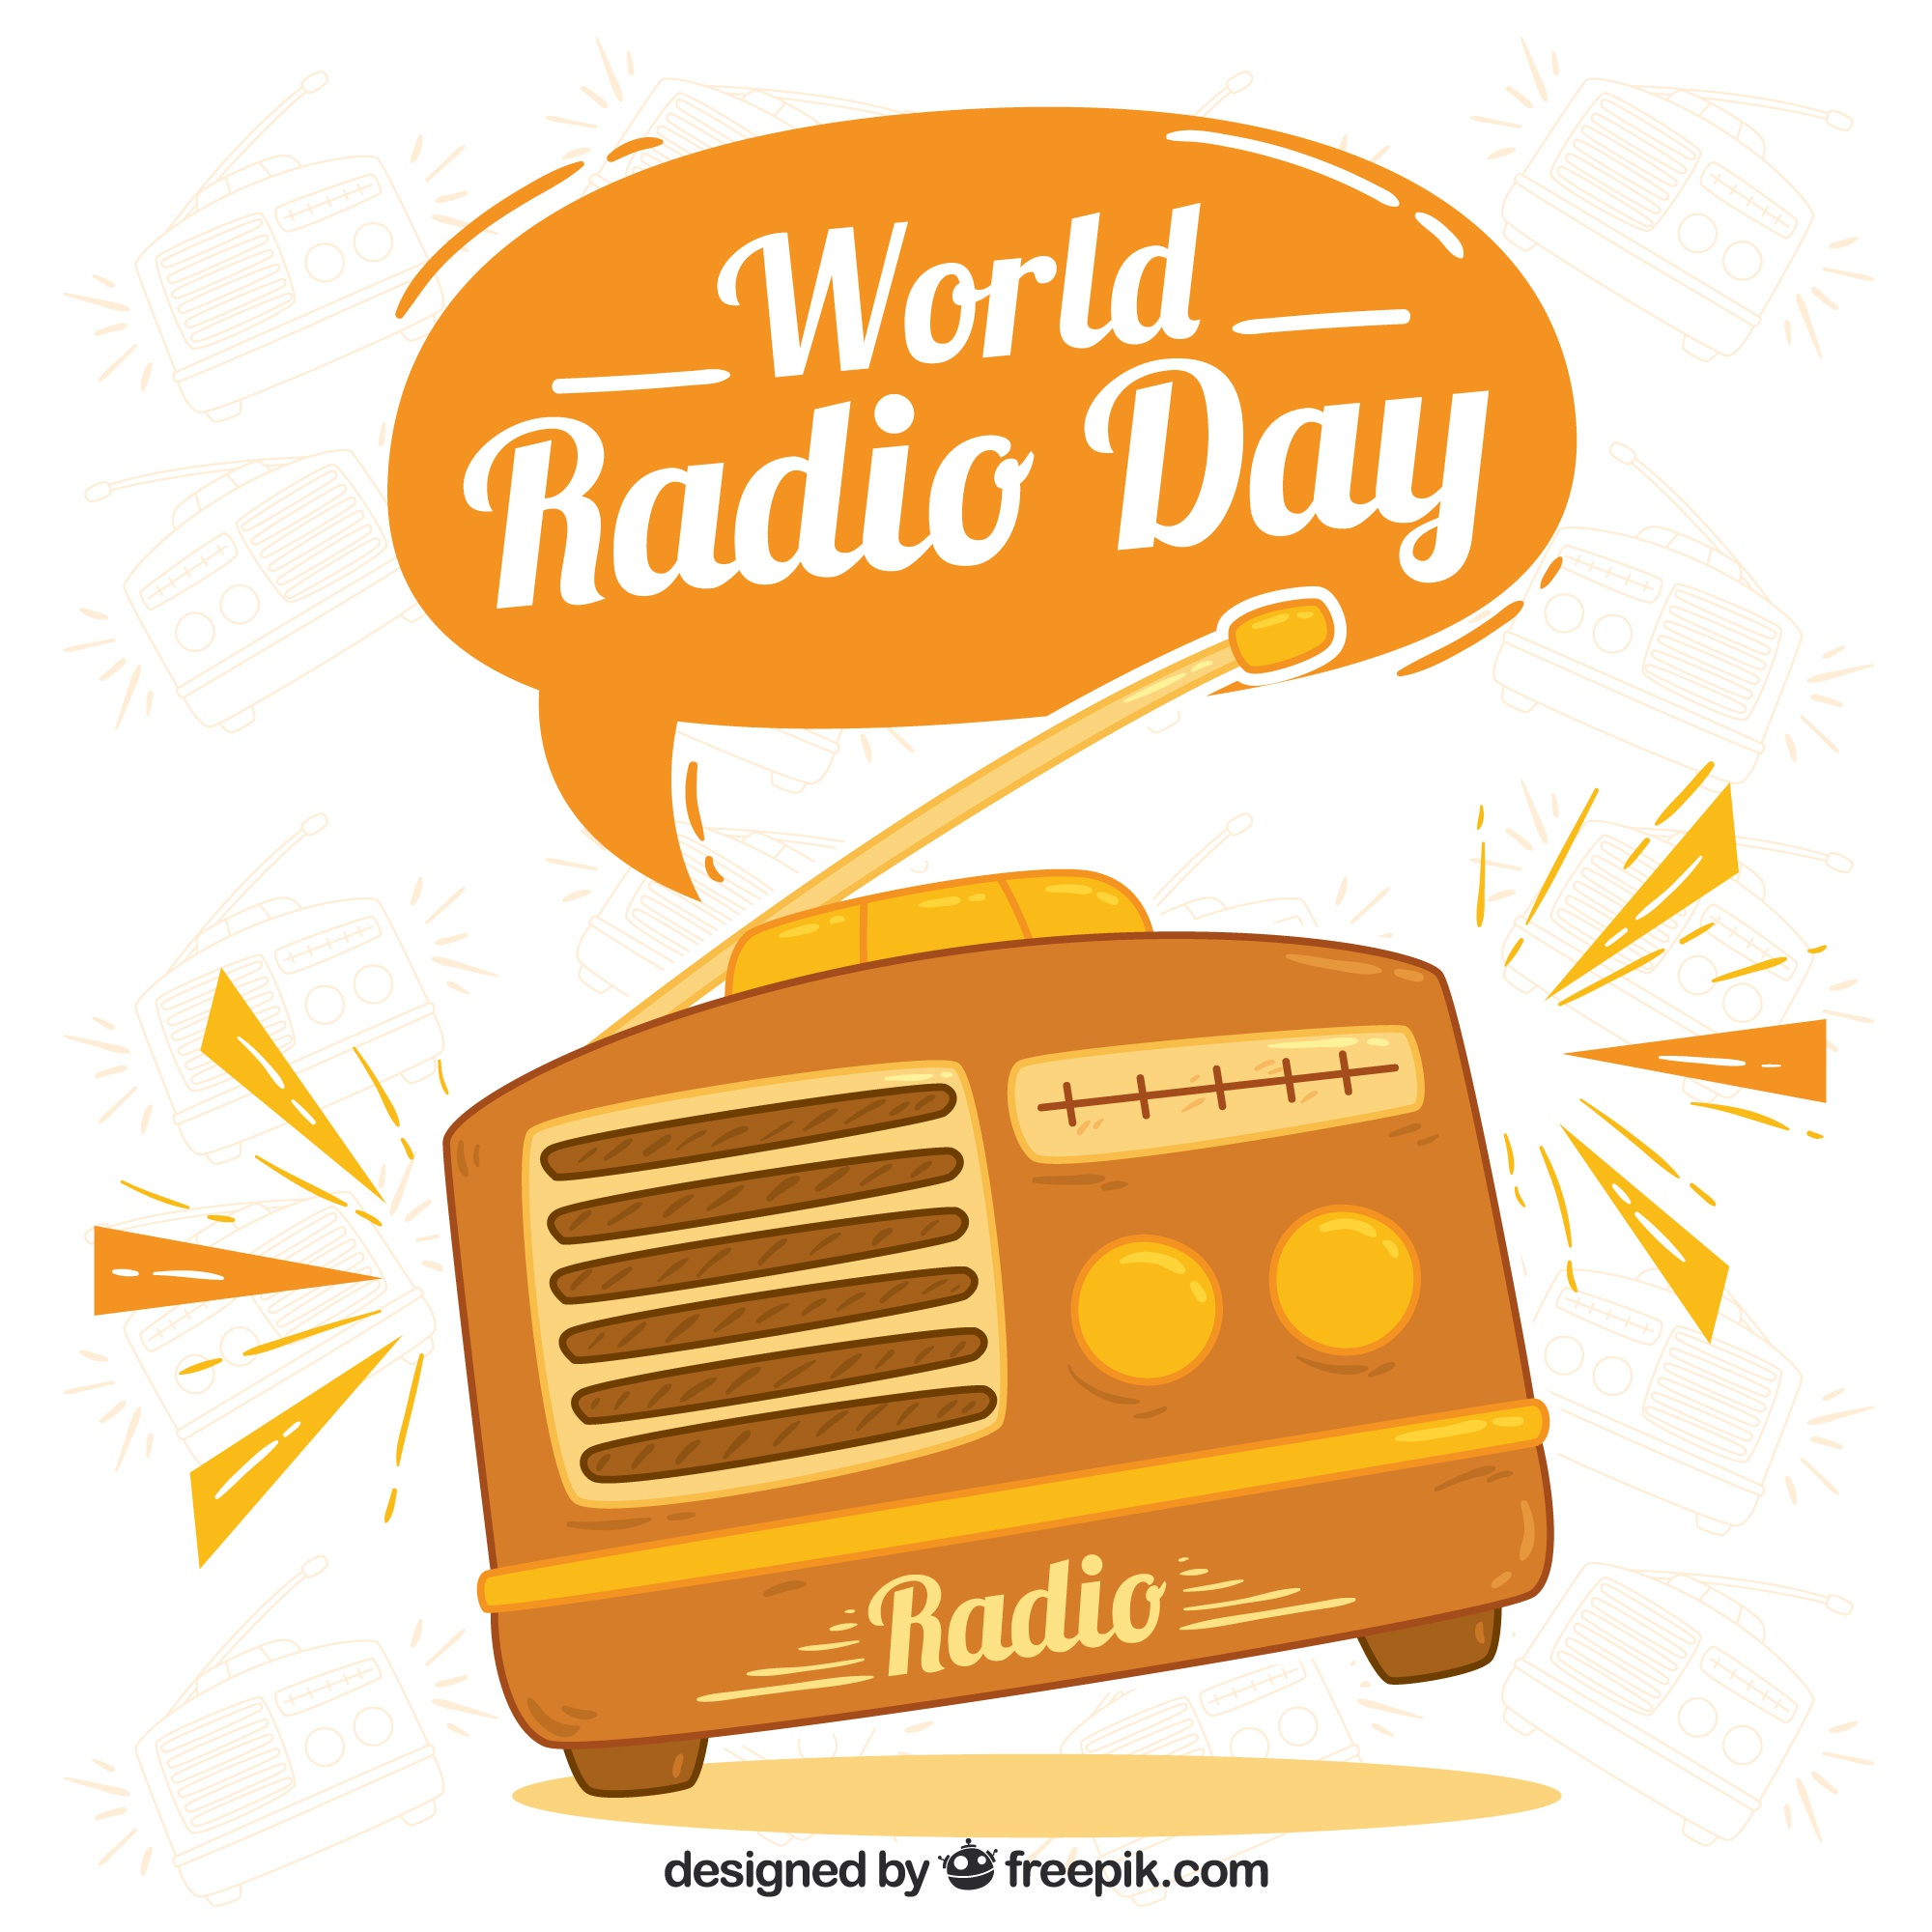 World radio day background in orange tones